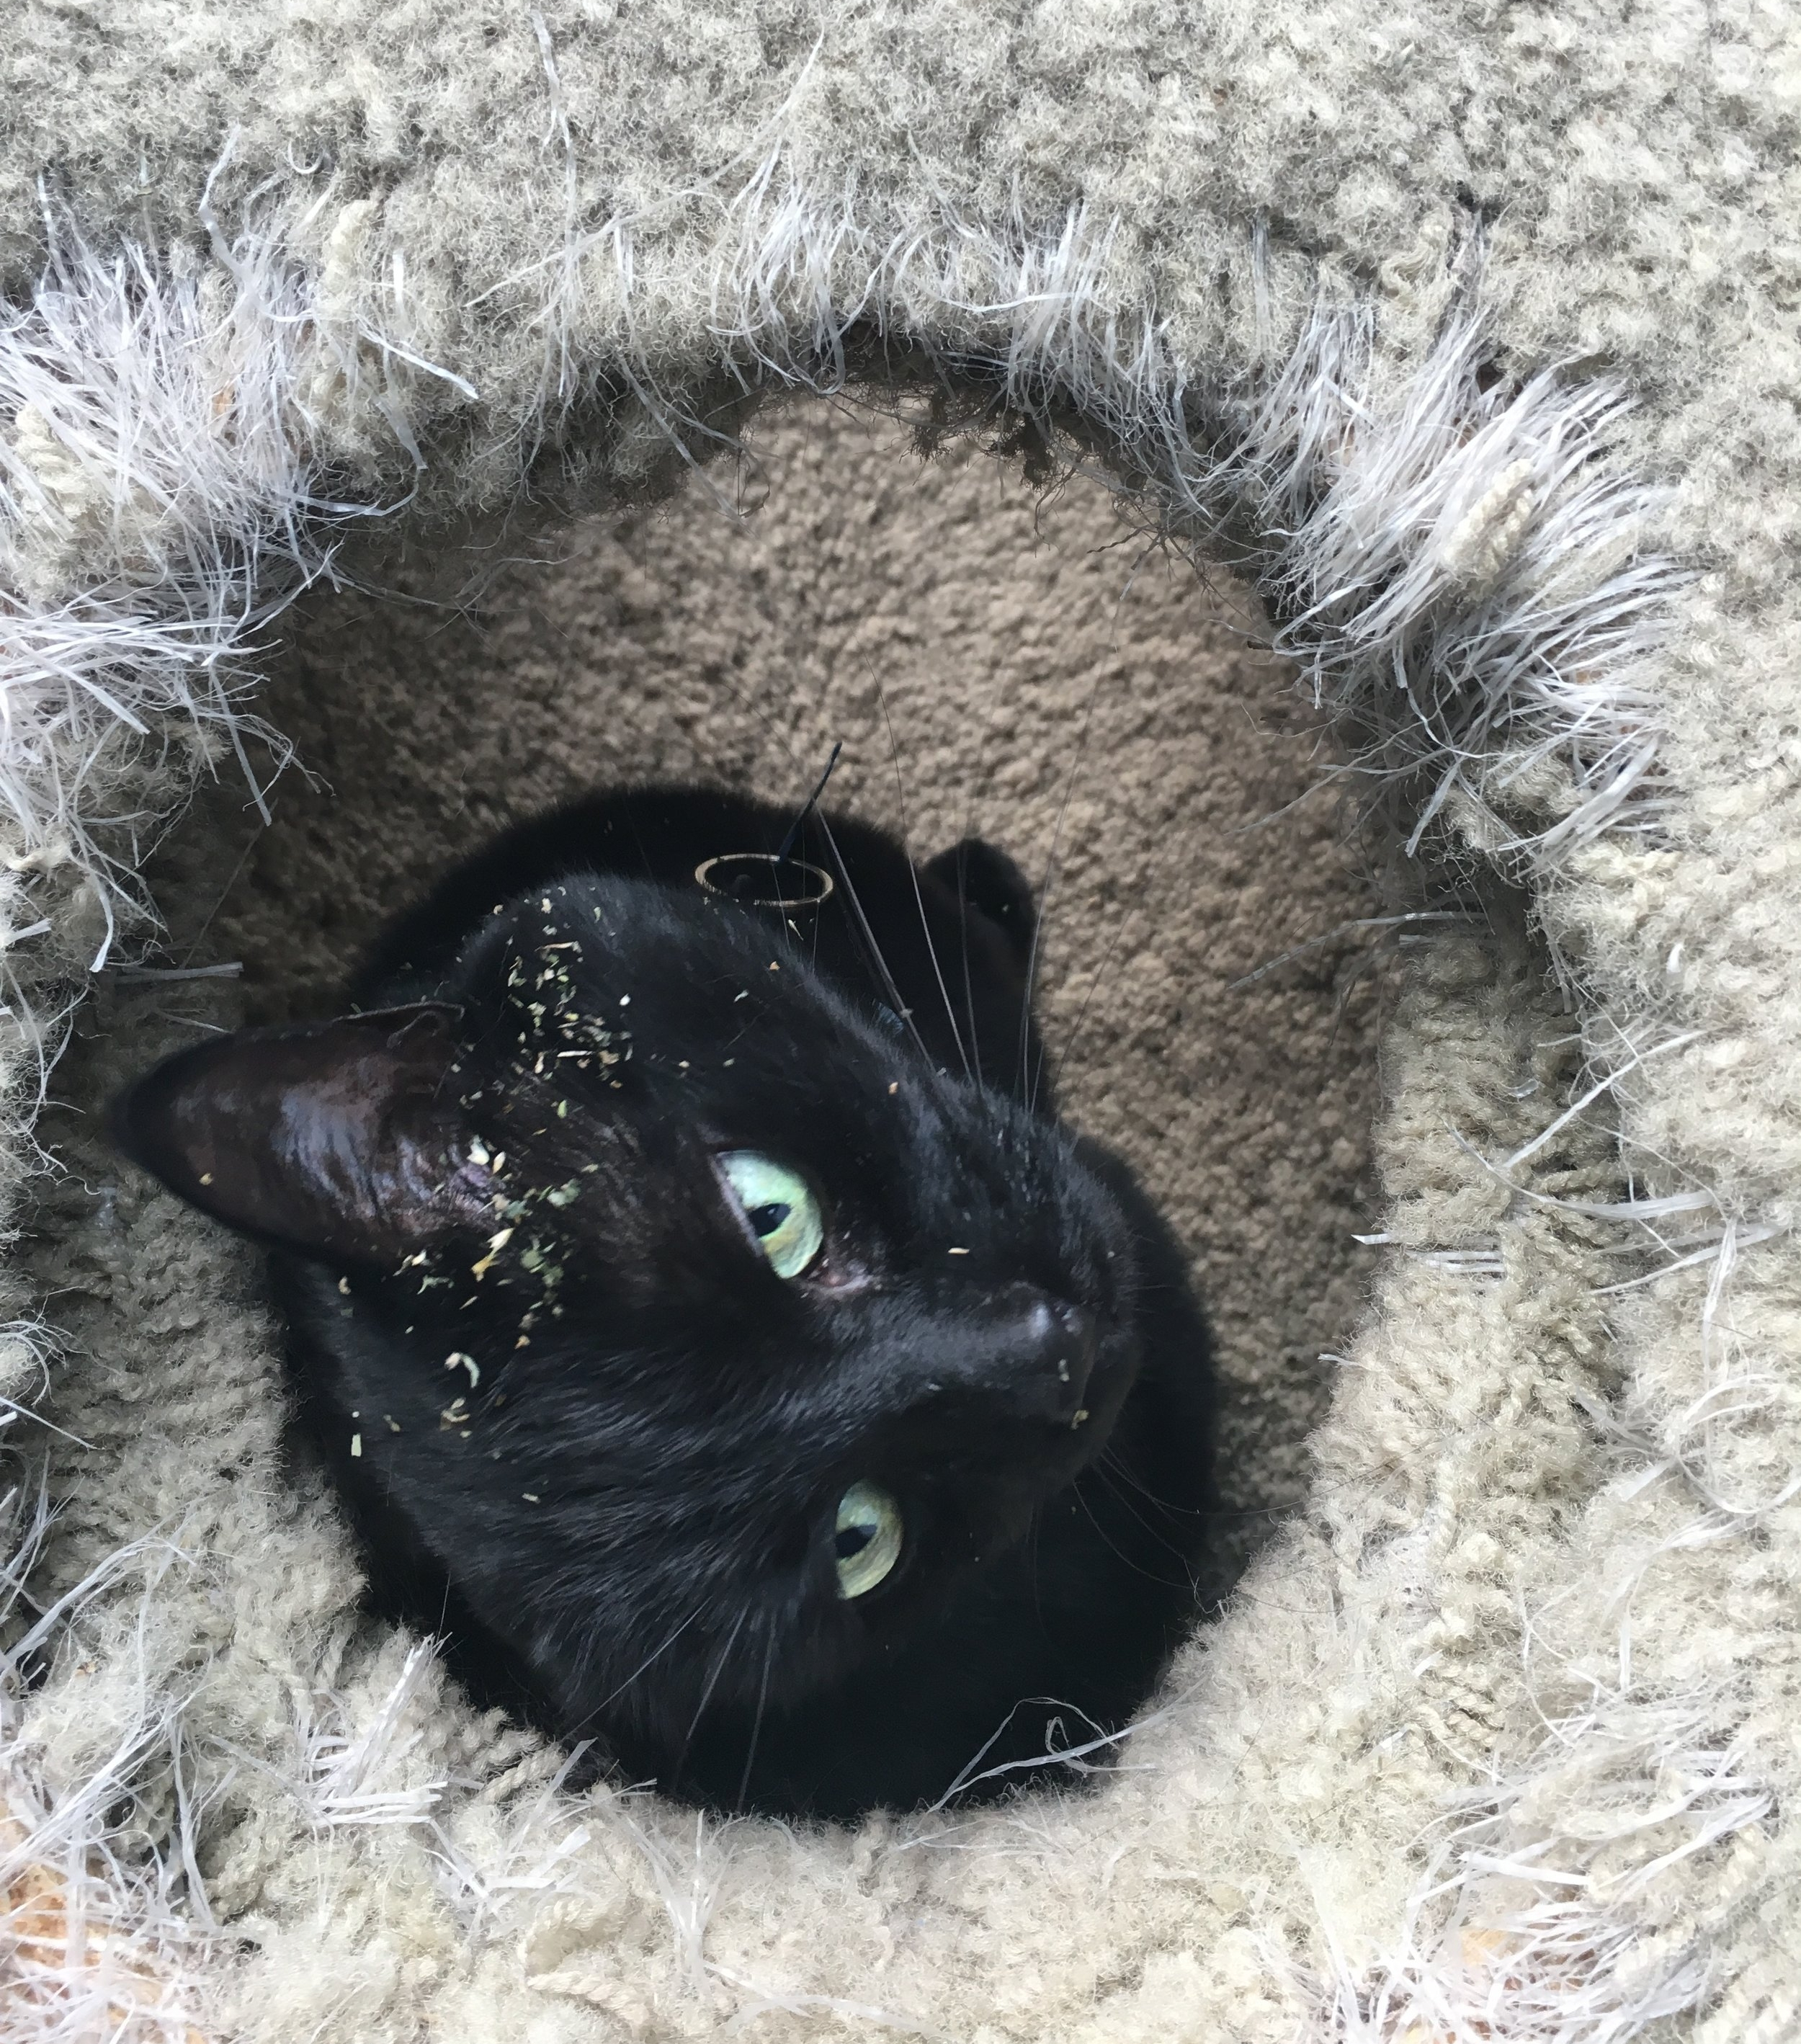 Black Cat in A Hole